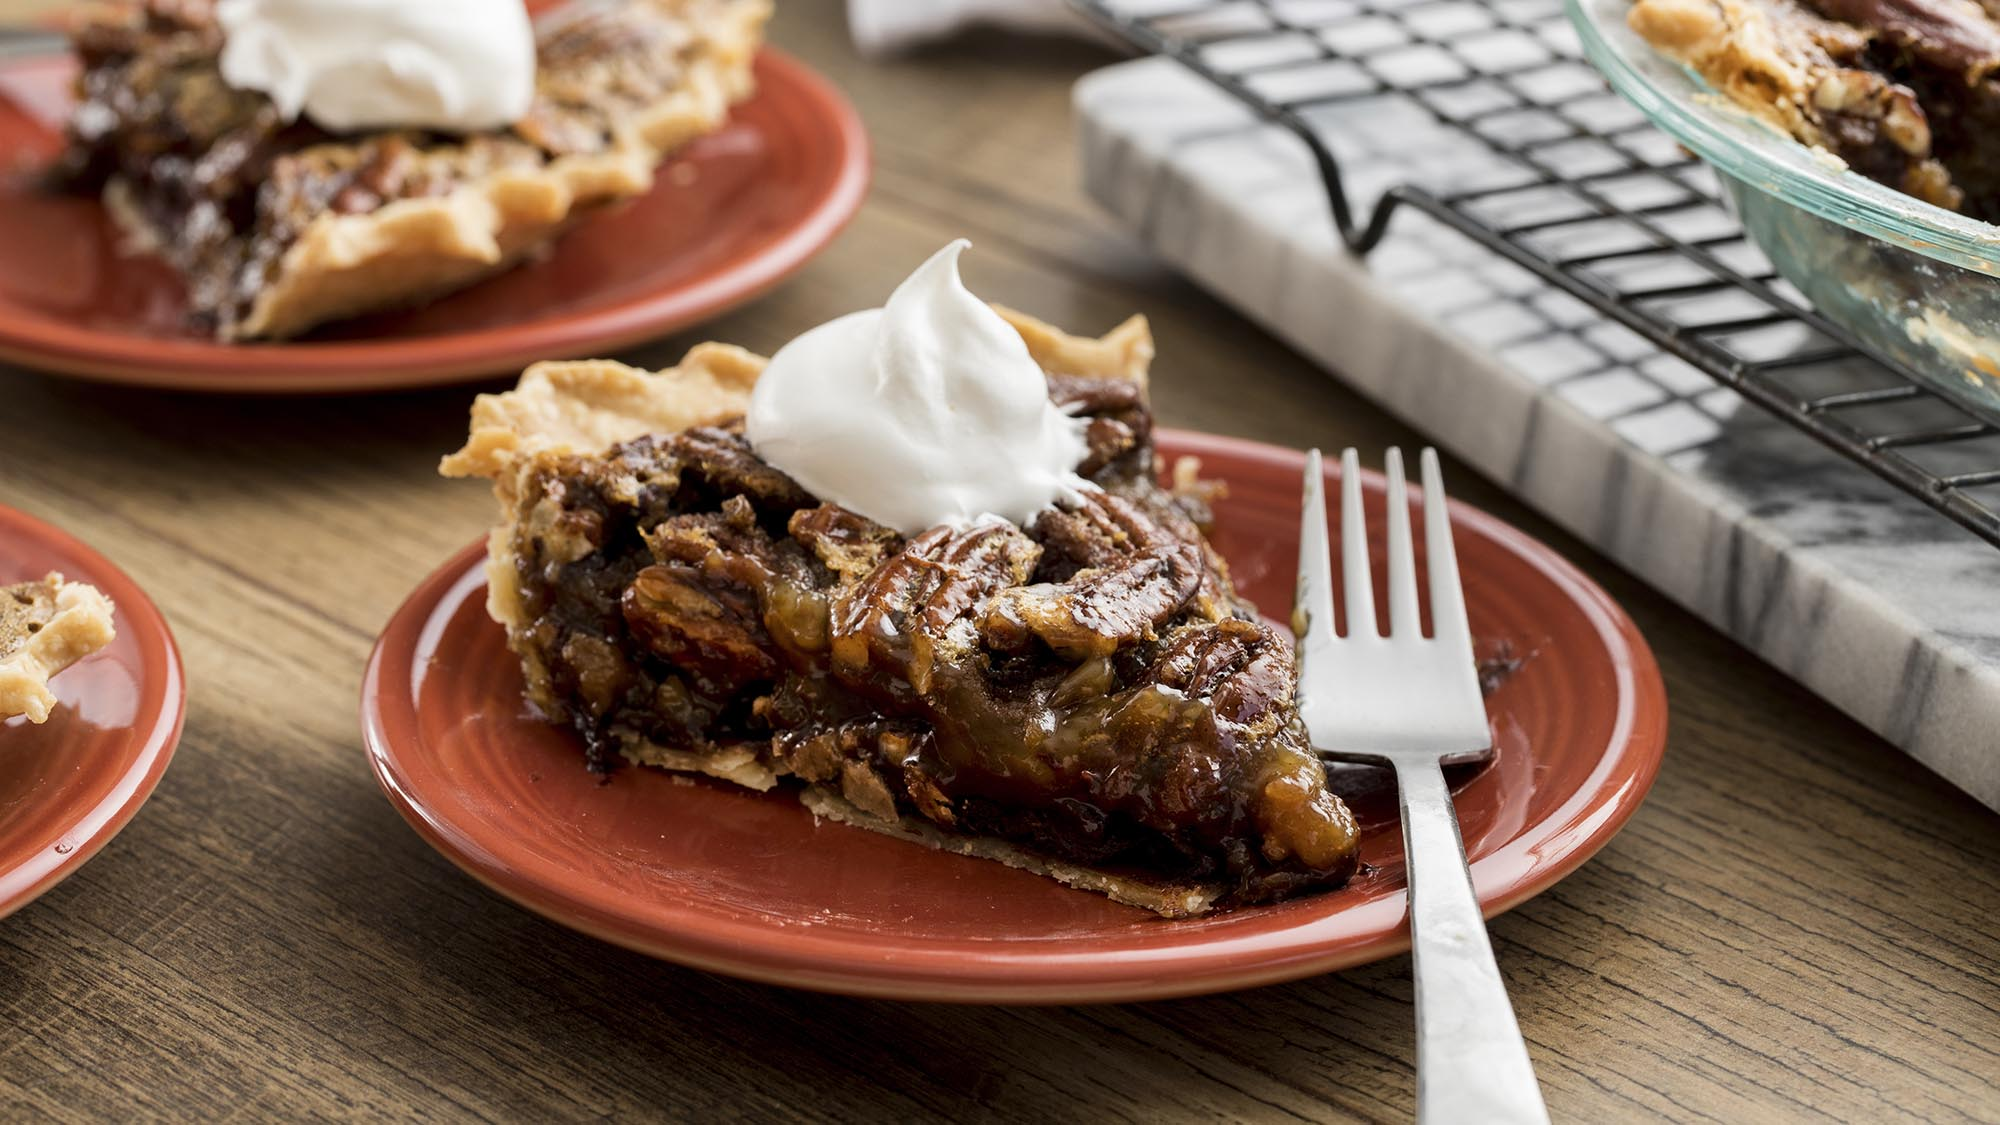 McCormick Chocolate Pecan Pie